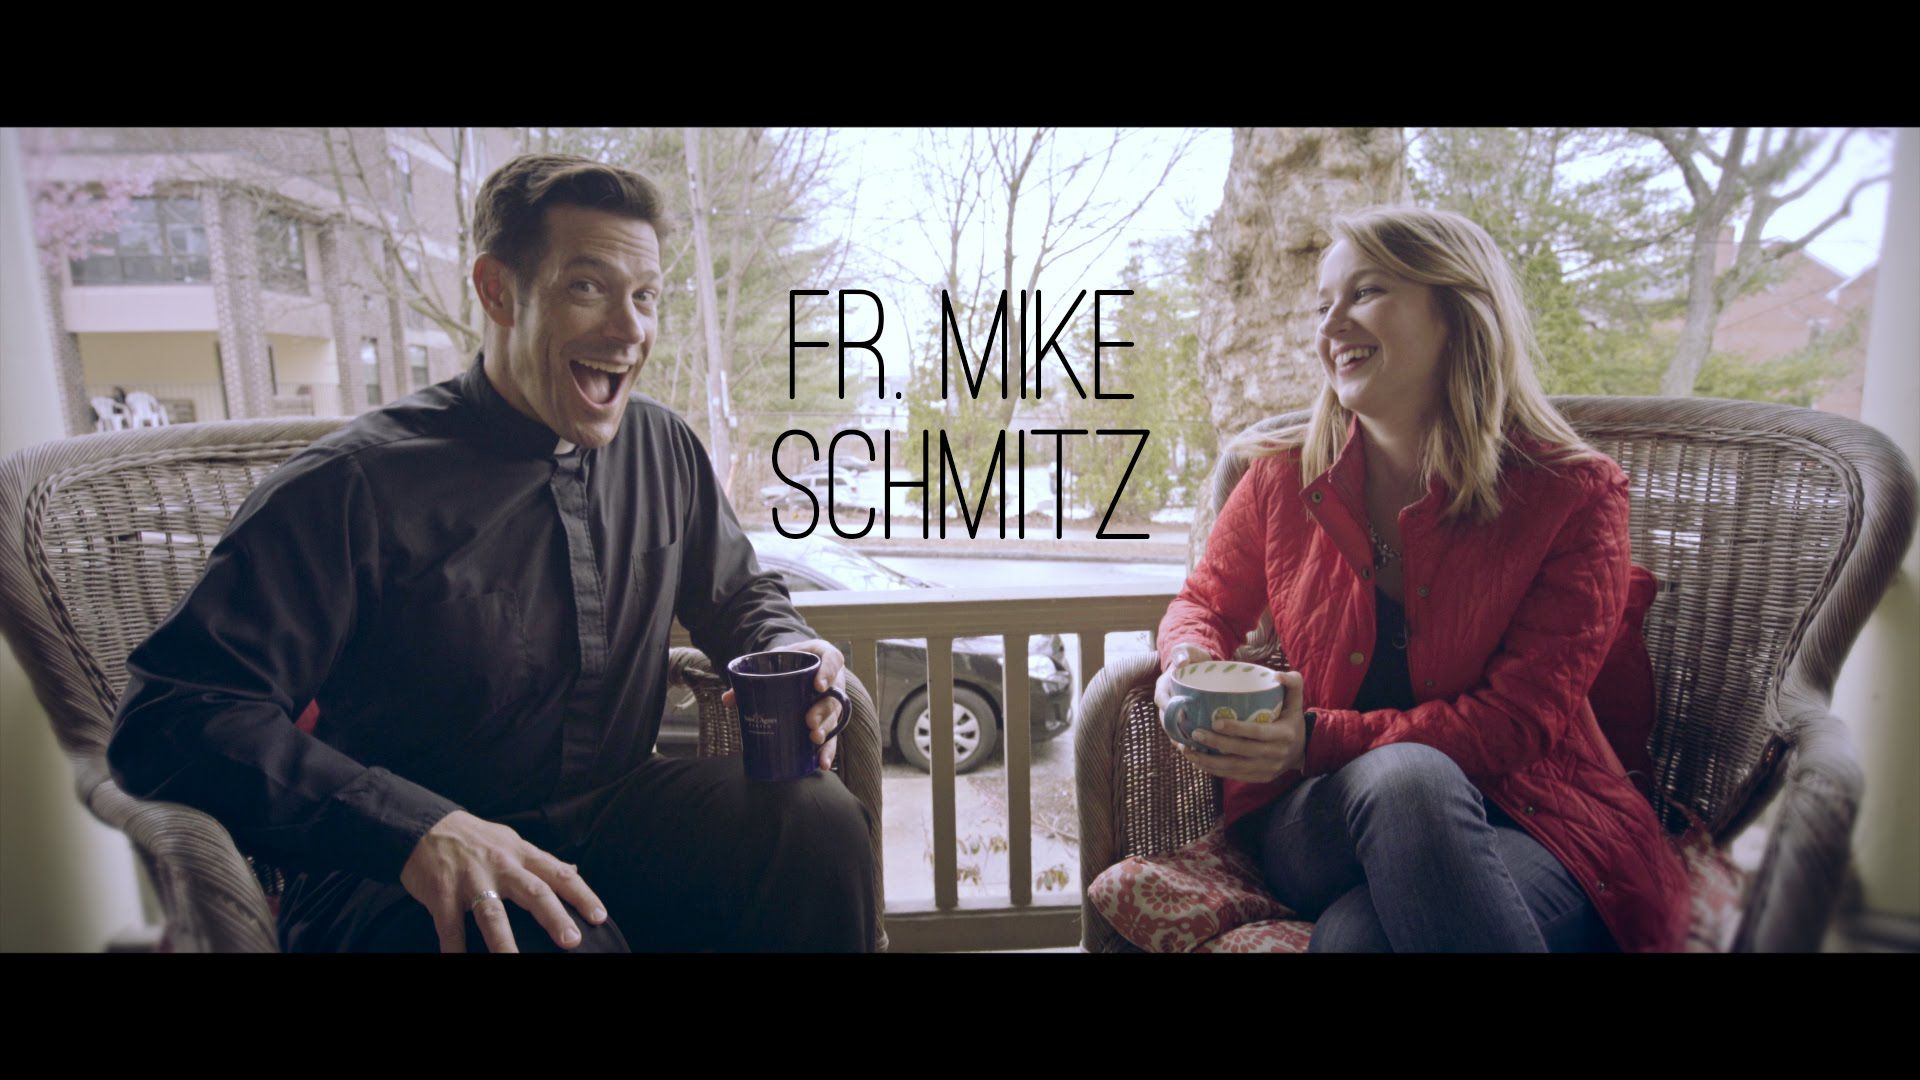 Caffeinated Conversations with Fr. Mike Schmitz - we share that high ...